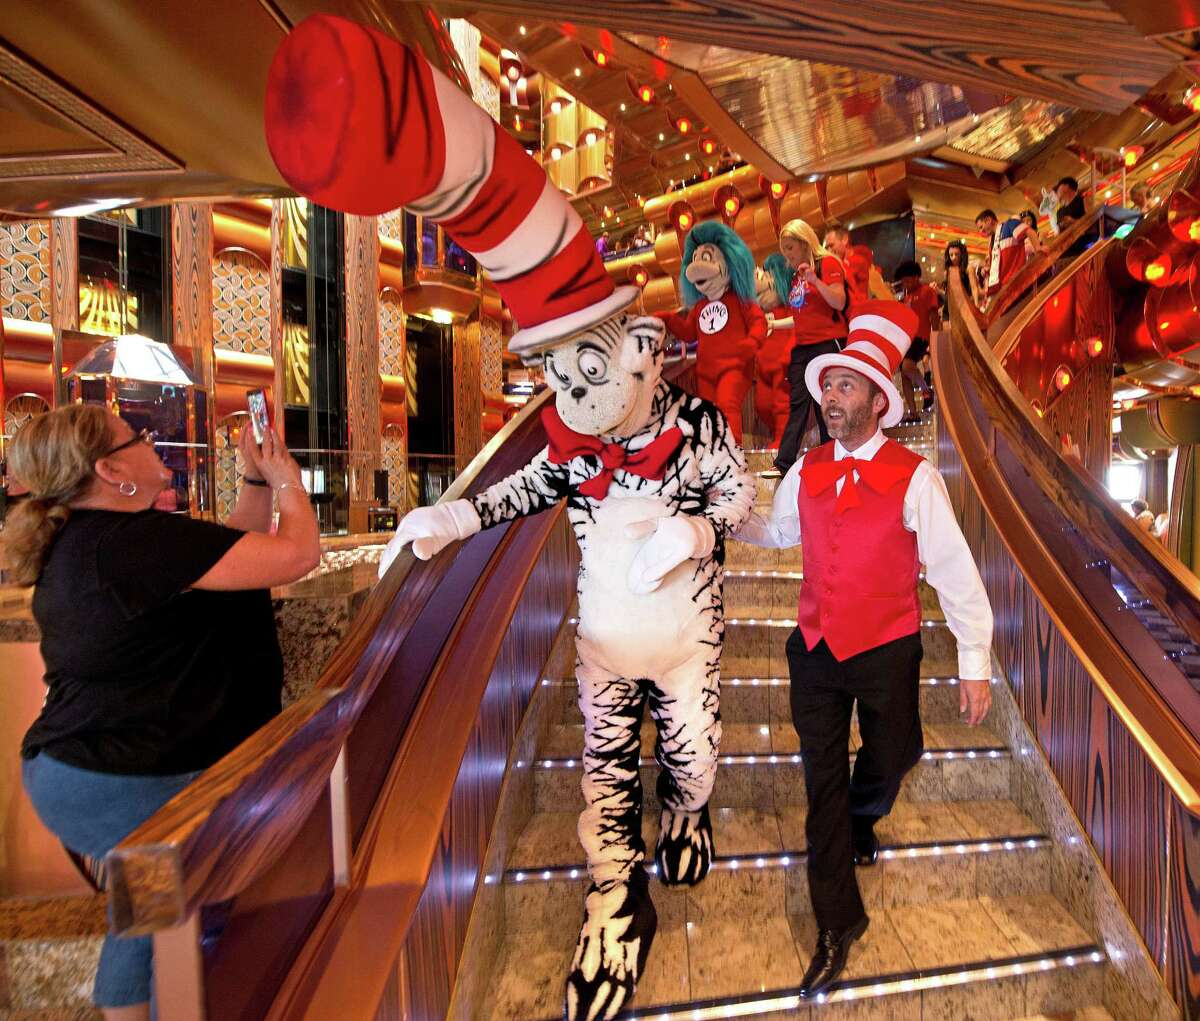 The Cat-in-the-Hat and other Dr. Seuss characters descend the Millennium Atrium's staircase during the Seuss-a-palooza parade on the Carnival Freedom. The procession is one of several facets of a Carnival Seuss at Sea program that offers a variety of exciting and immersive onboard youth, family, dining and entertainment experiences featuring the amazing world and words of Dr. Seuss.